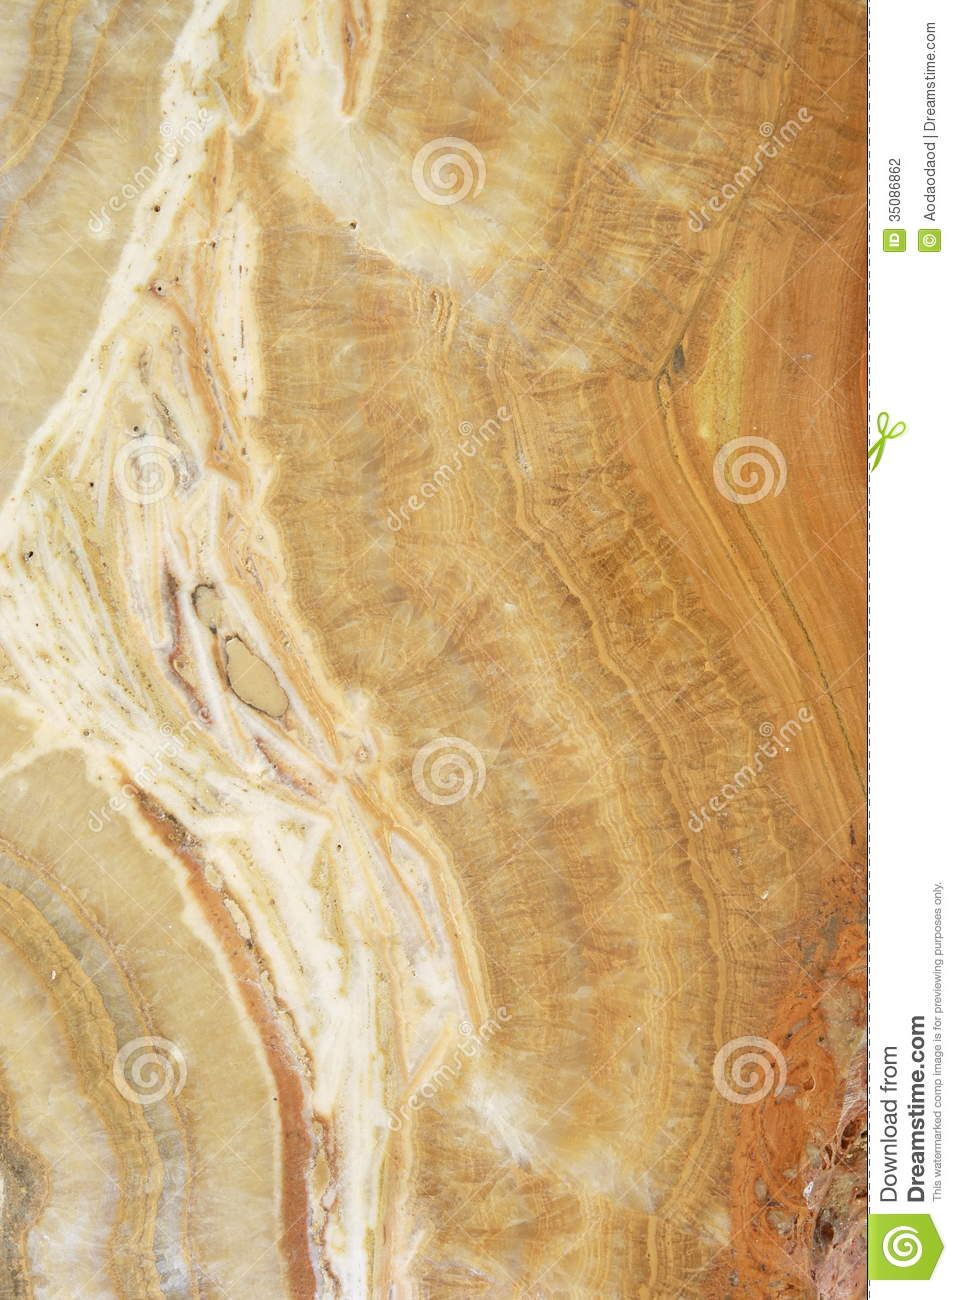 50 989 Natural Brown Granite Texture Photos Free Royalty Free Stock Photos From Dreamstime